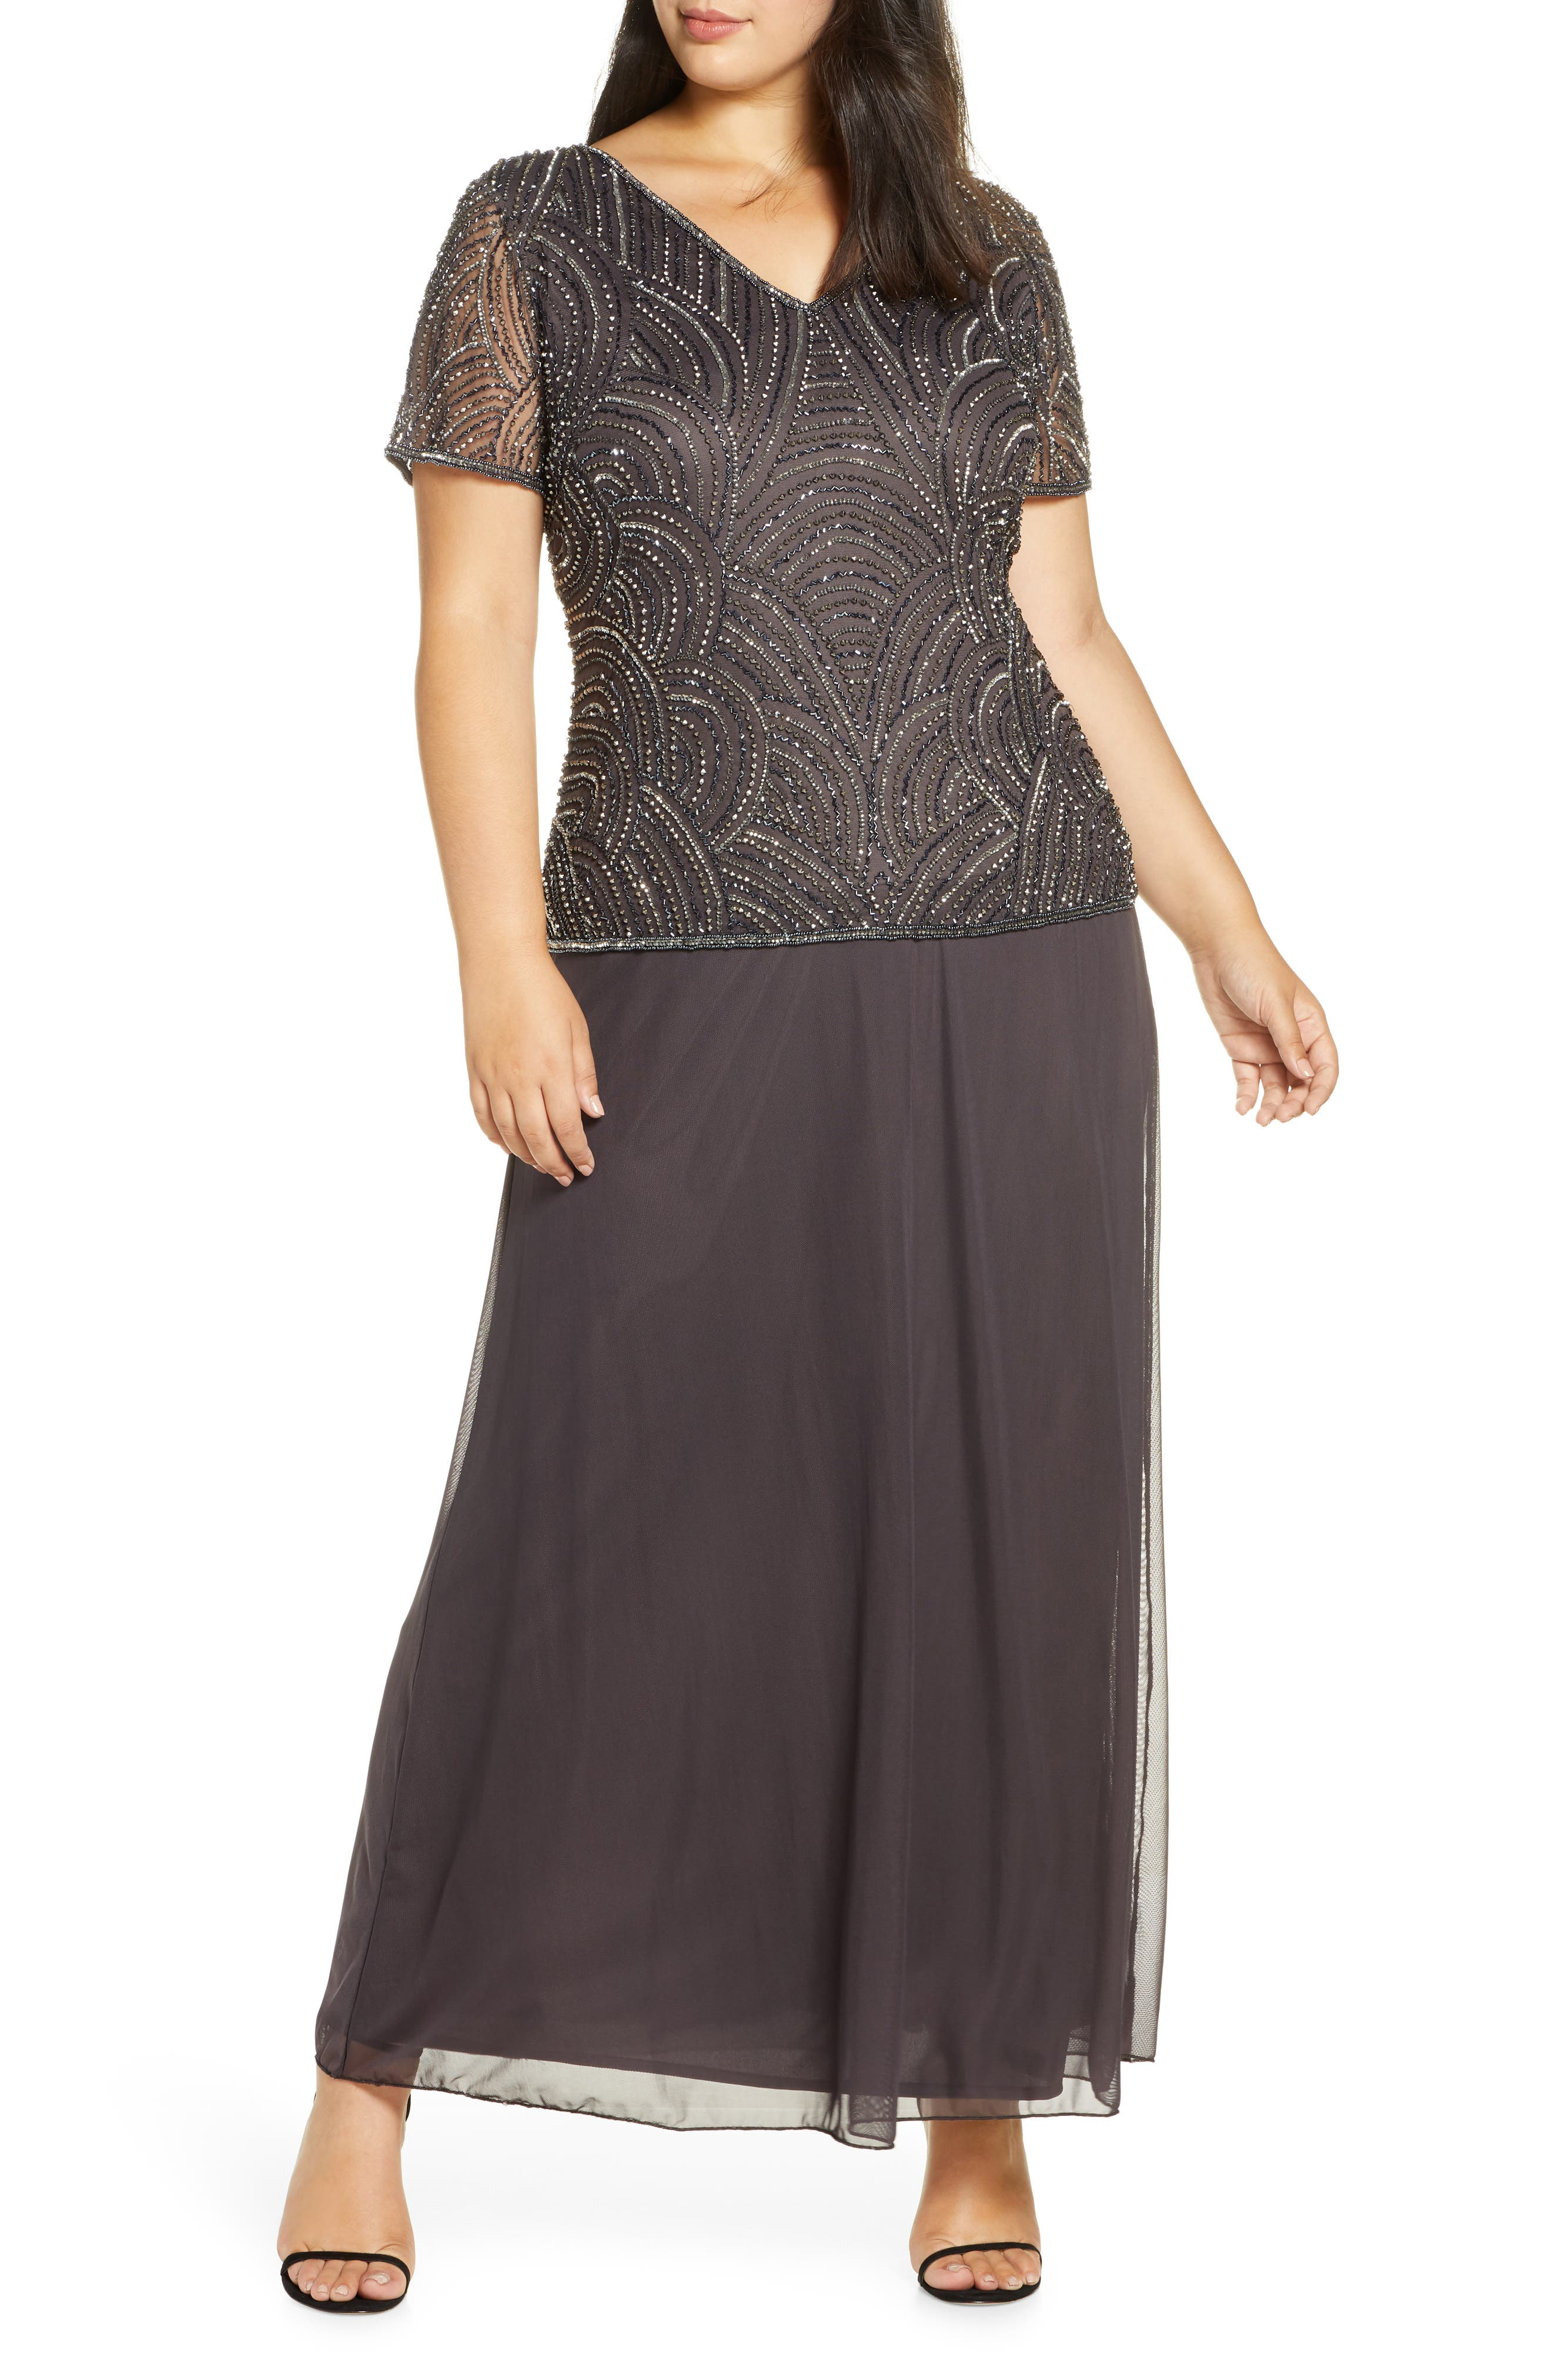 1920s Plus Size Flapper Dresses, Gatsby Dresses, Flapper Costumes Plus Size Womens Pisarro Nights Beaded Mock Two-Piece Gown $238.00 AT vintagedancer.com